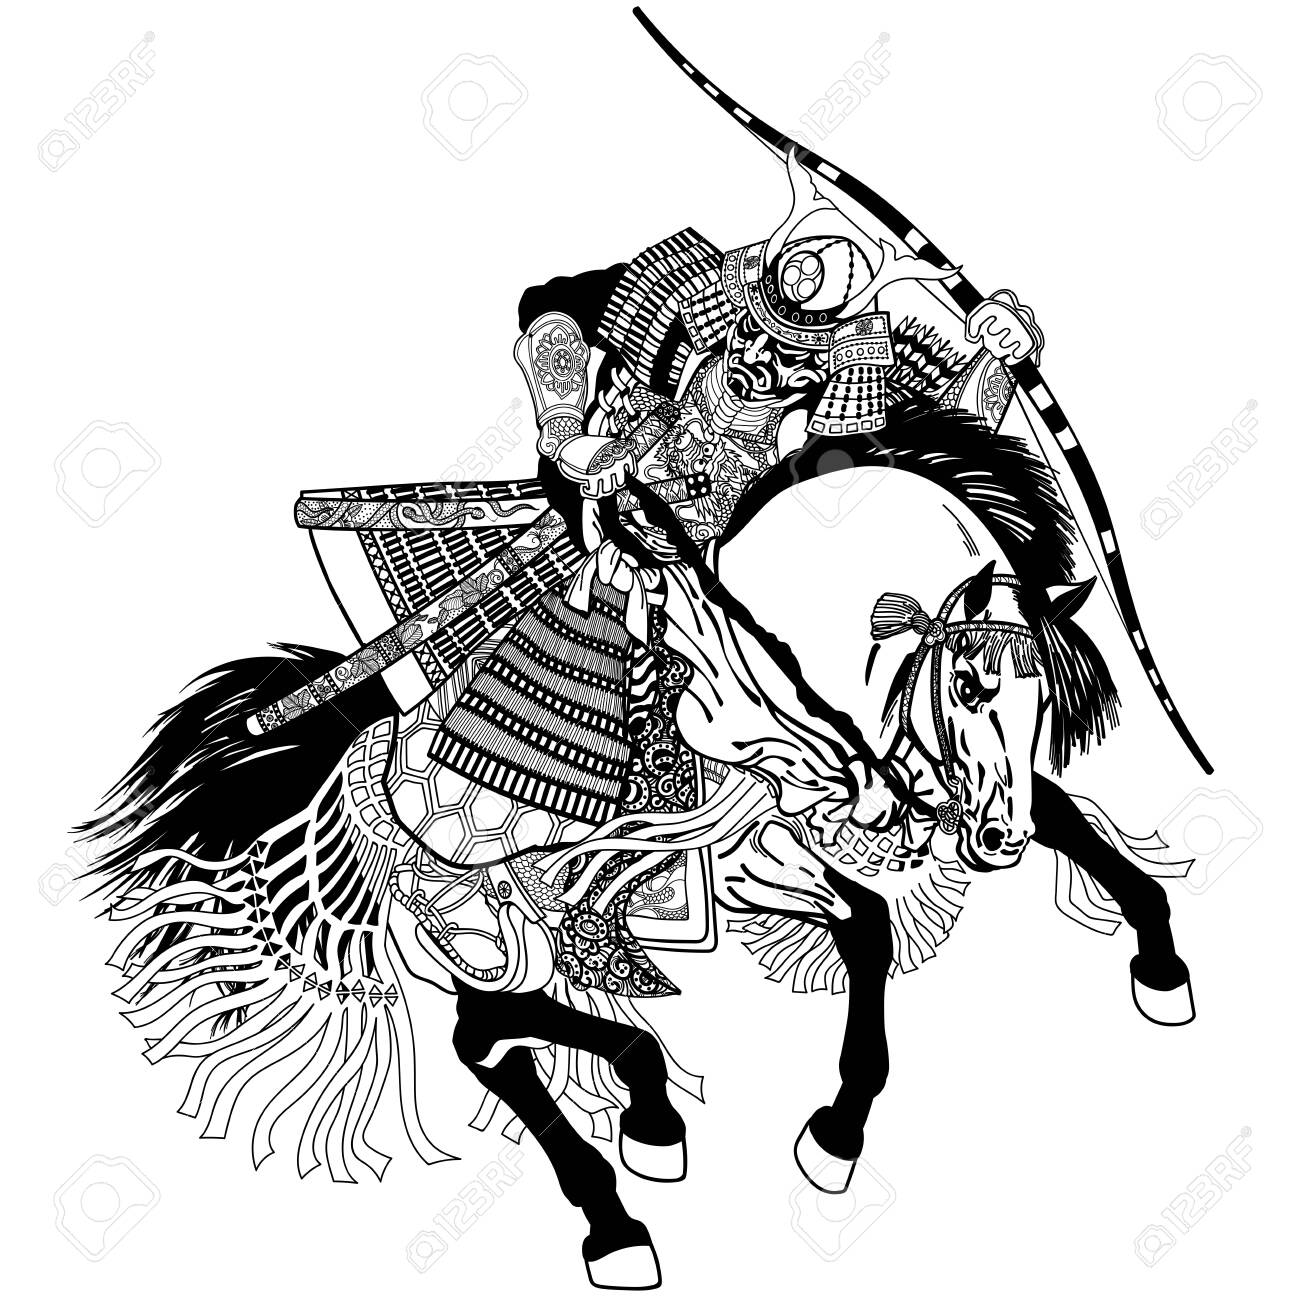 Japanese Samurai Horse Rider Dressed In Full Leather Armor Helmet Royalty Free Cliparts Vectors And Stock Illustration Image 131094861